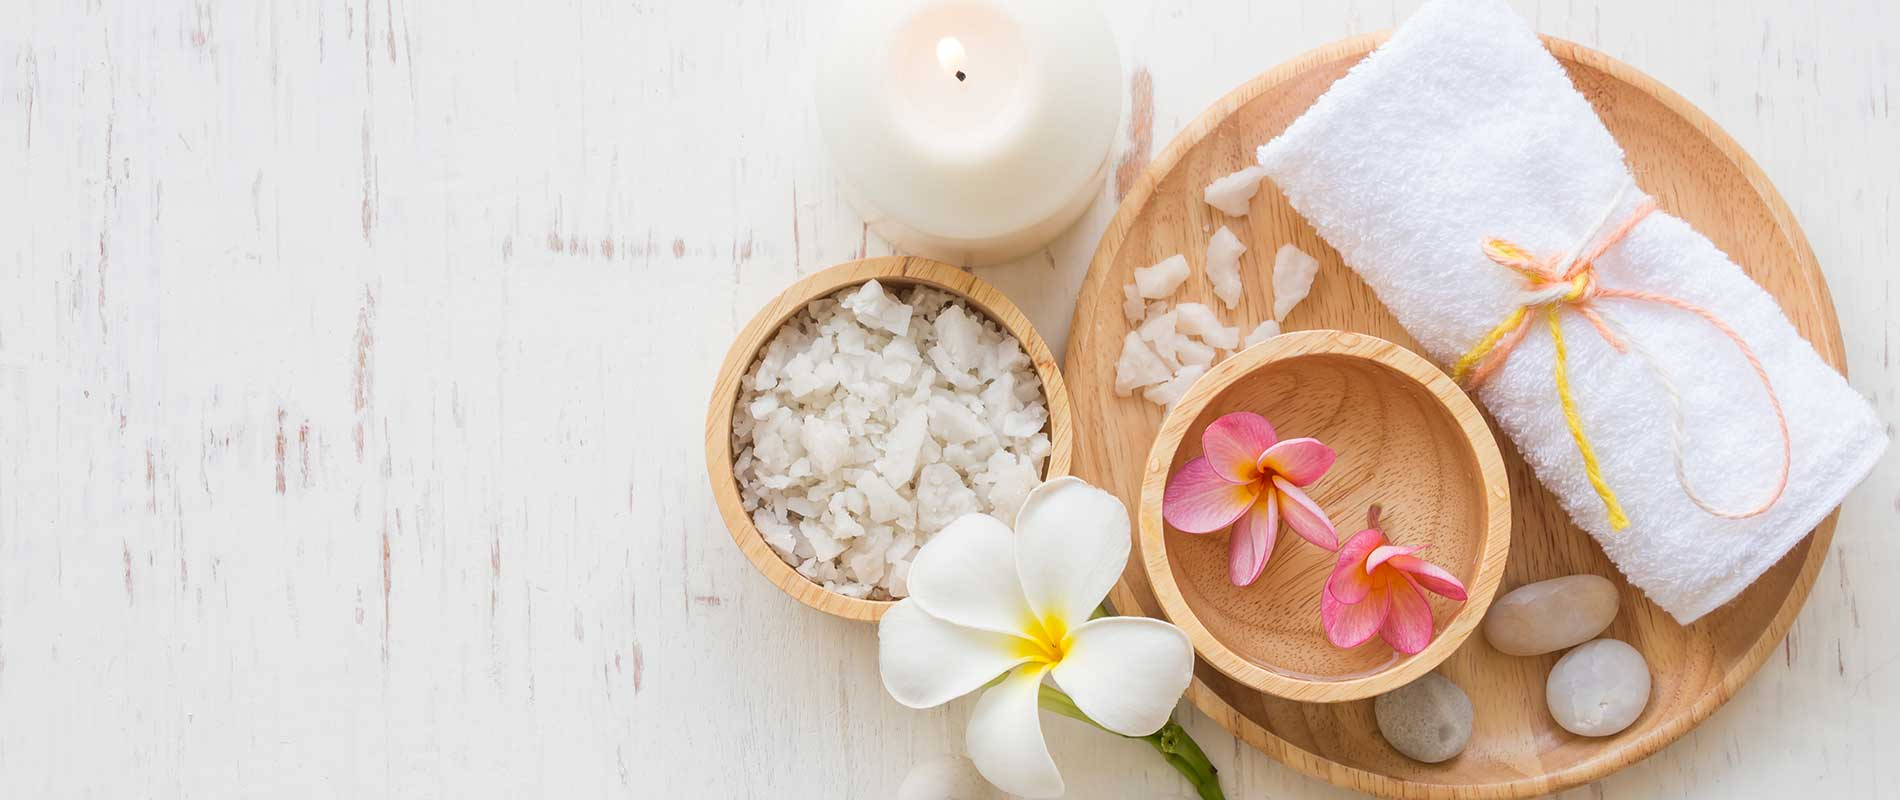 Your Essential Self-Care Day